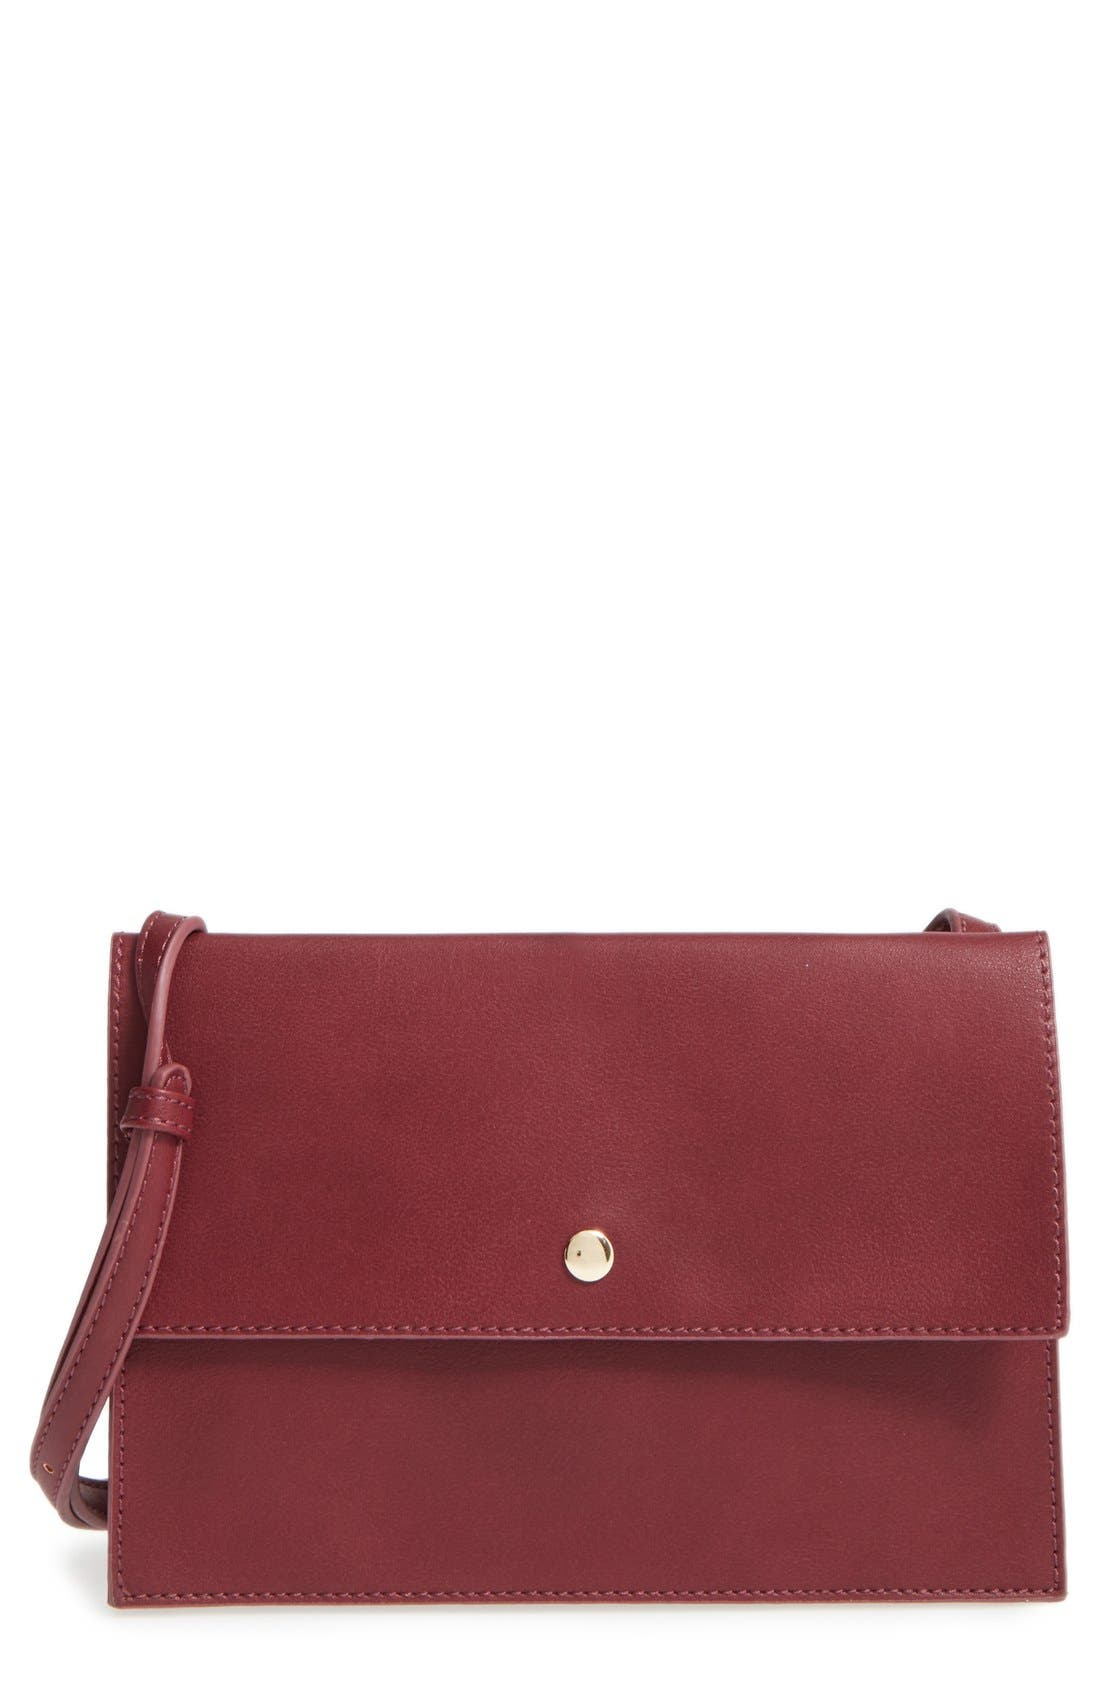 Alternate Image 1 Selected - Sole Society 'Vanessa' Faux Leather Crossbody Bag